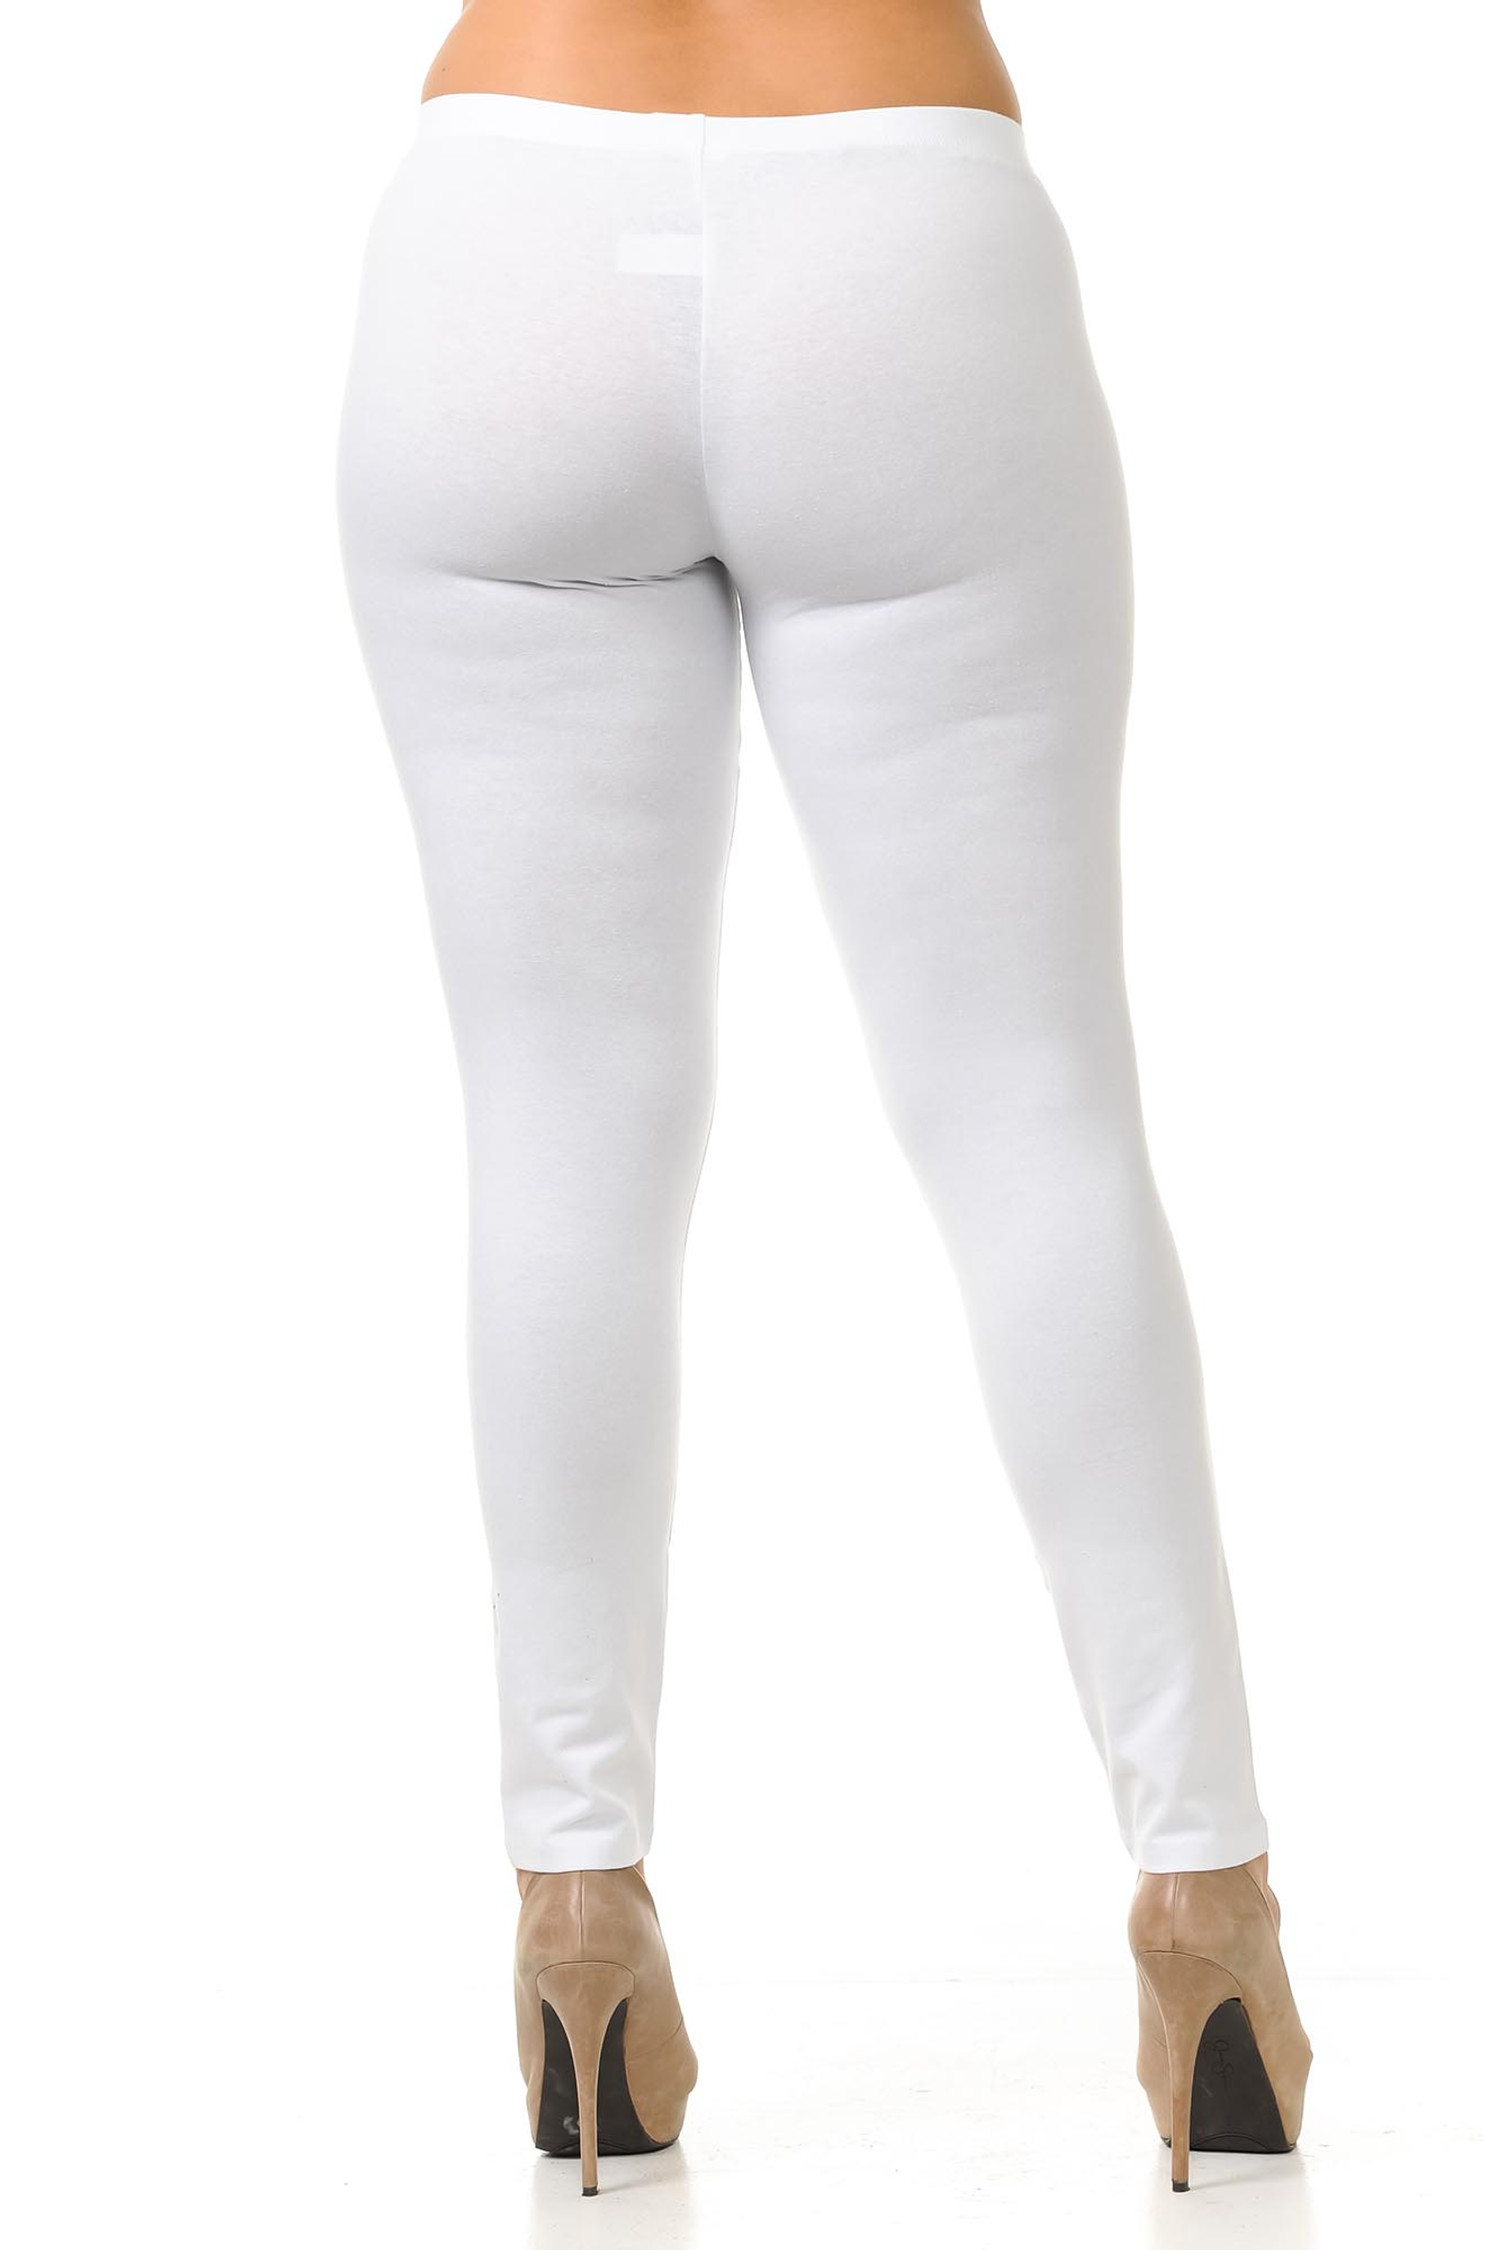 Rear view image of White USA Cotton Full Length Leggings - Plus Size